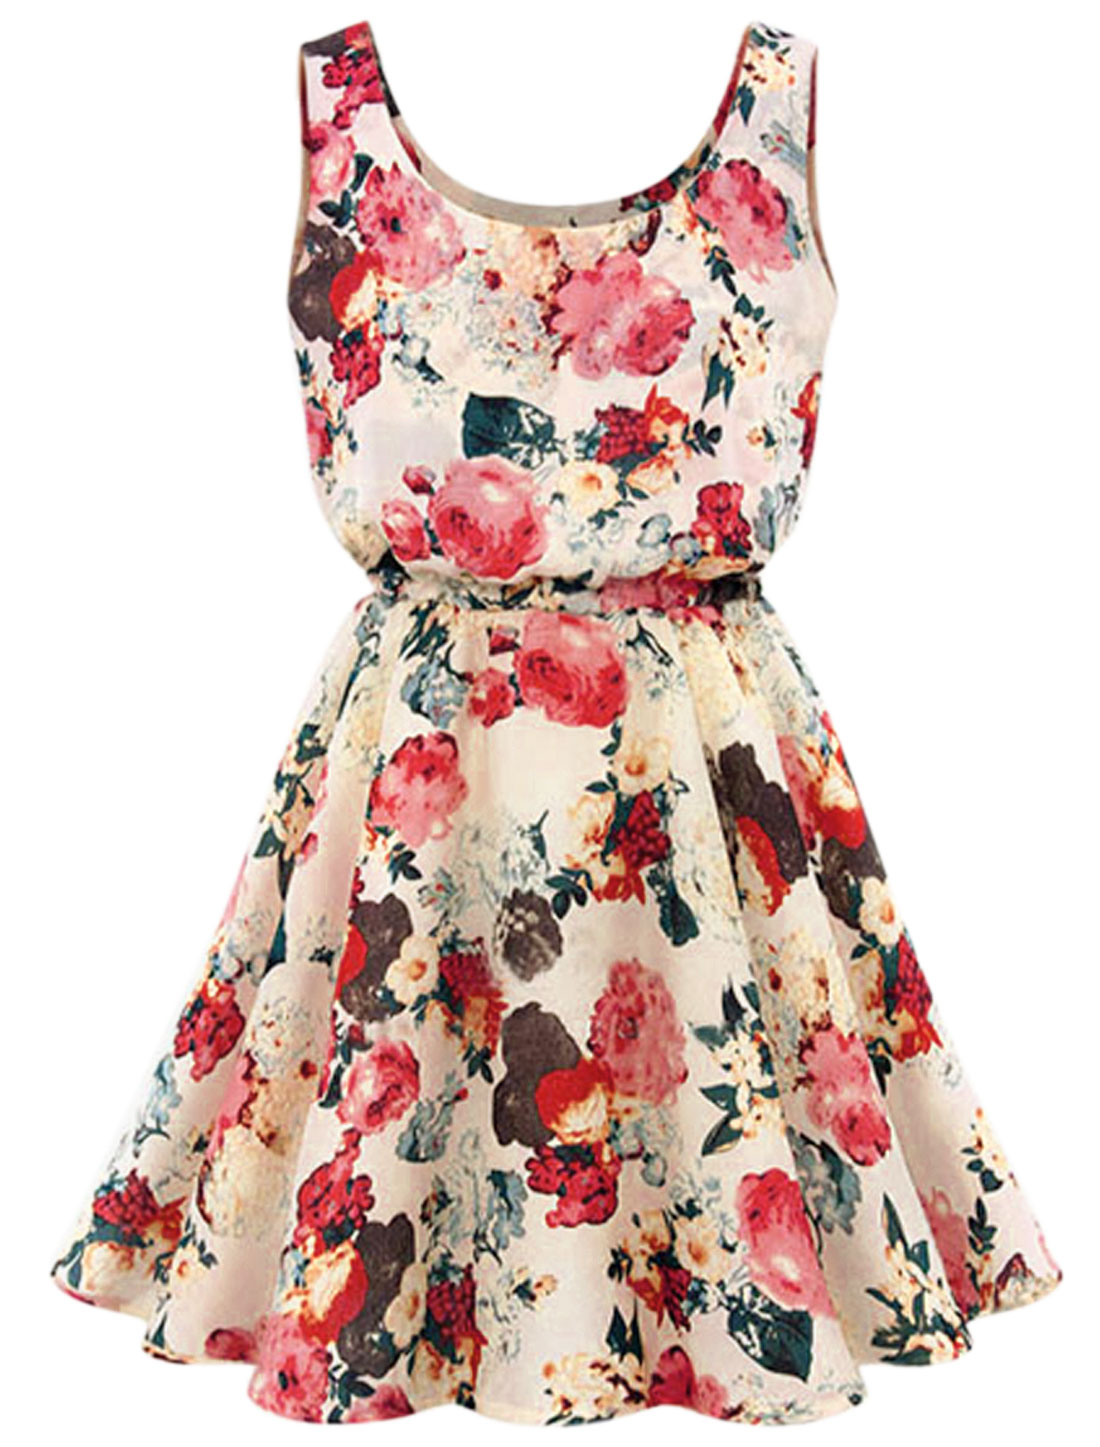 Lady NEW Sleeveless Elastic Waist Flower Pattern Dress Beige M